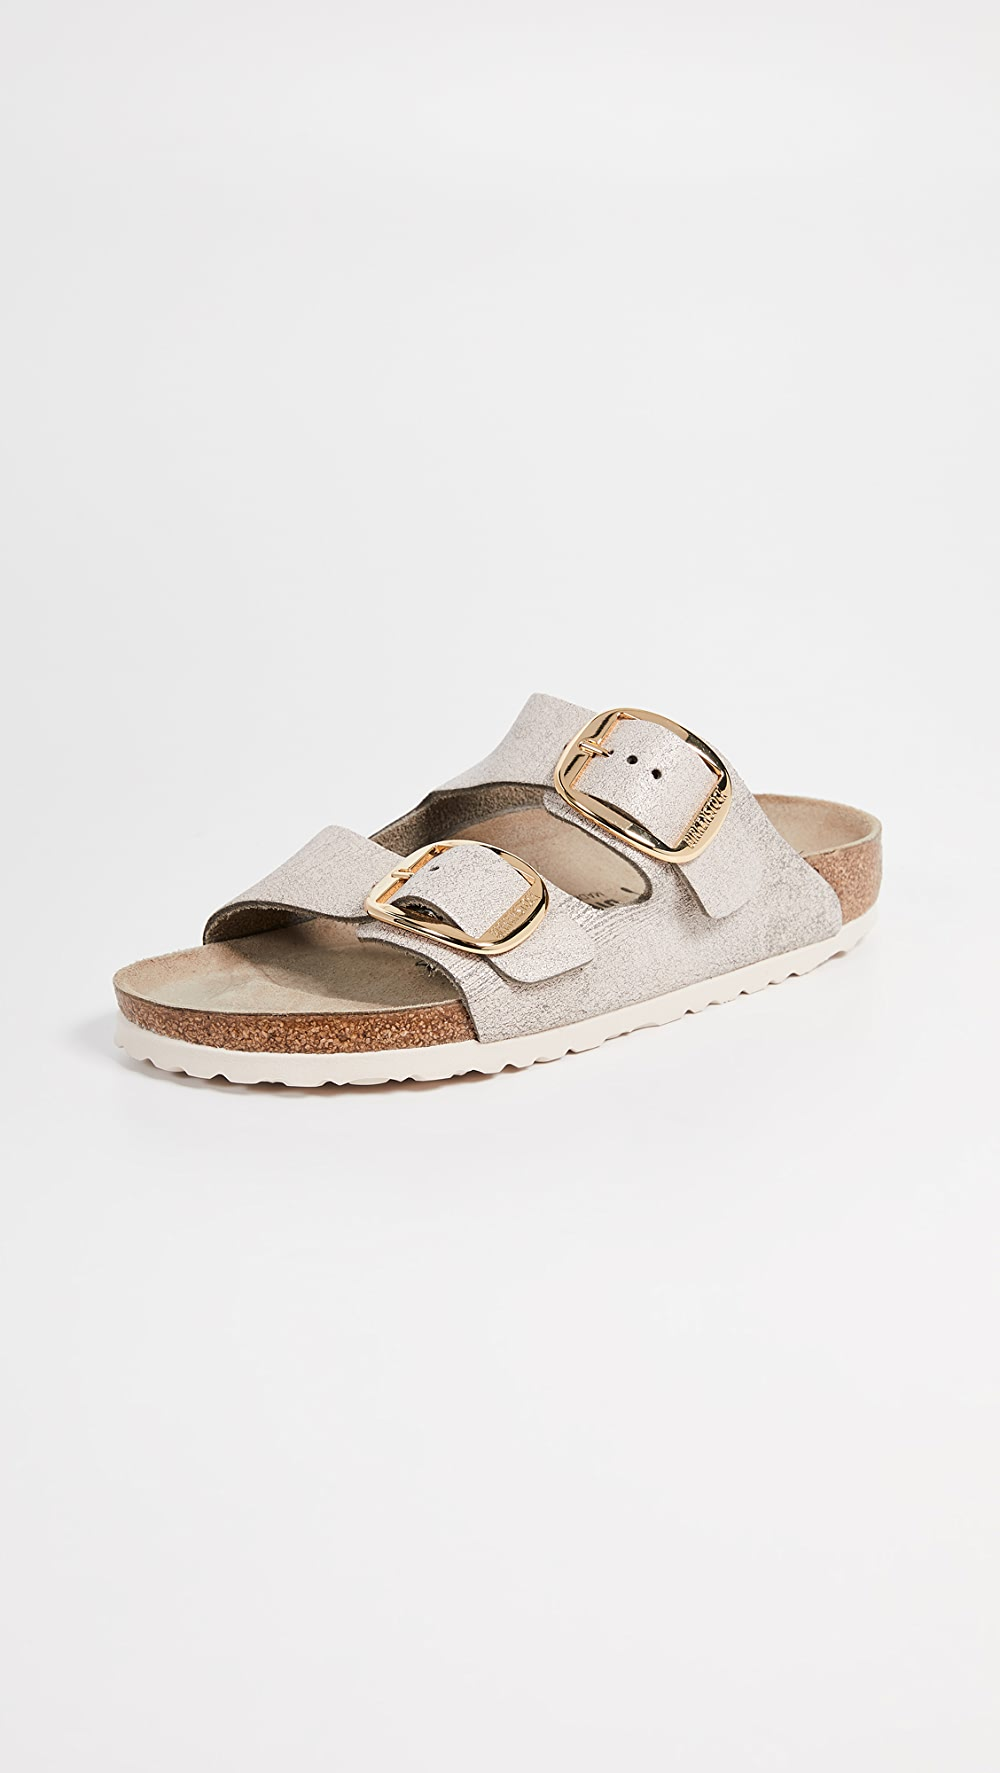 100% True Birkenstock - Arizona Big Buckle Sandals - Narrow Utmost In Convenience